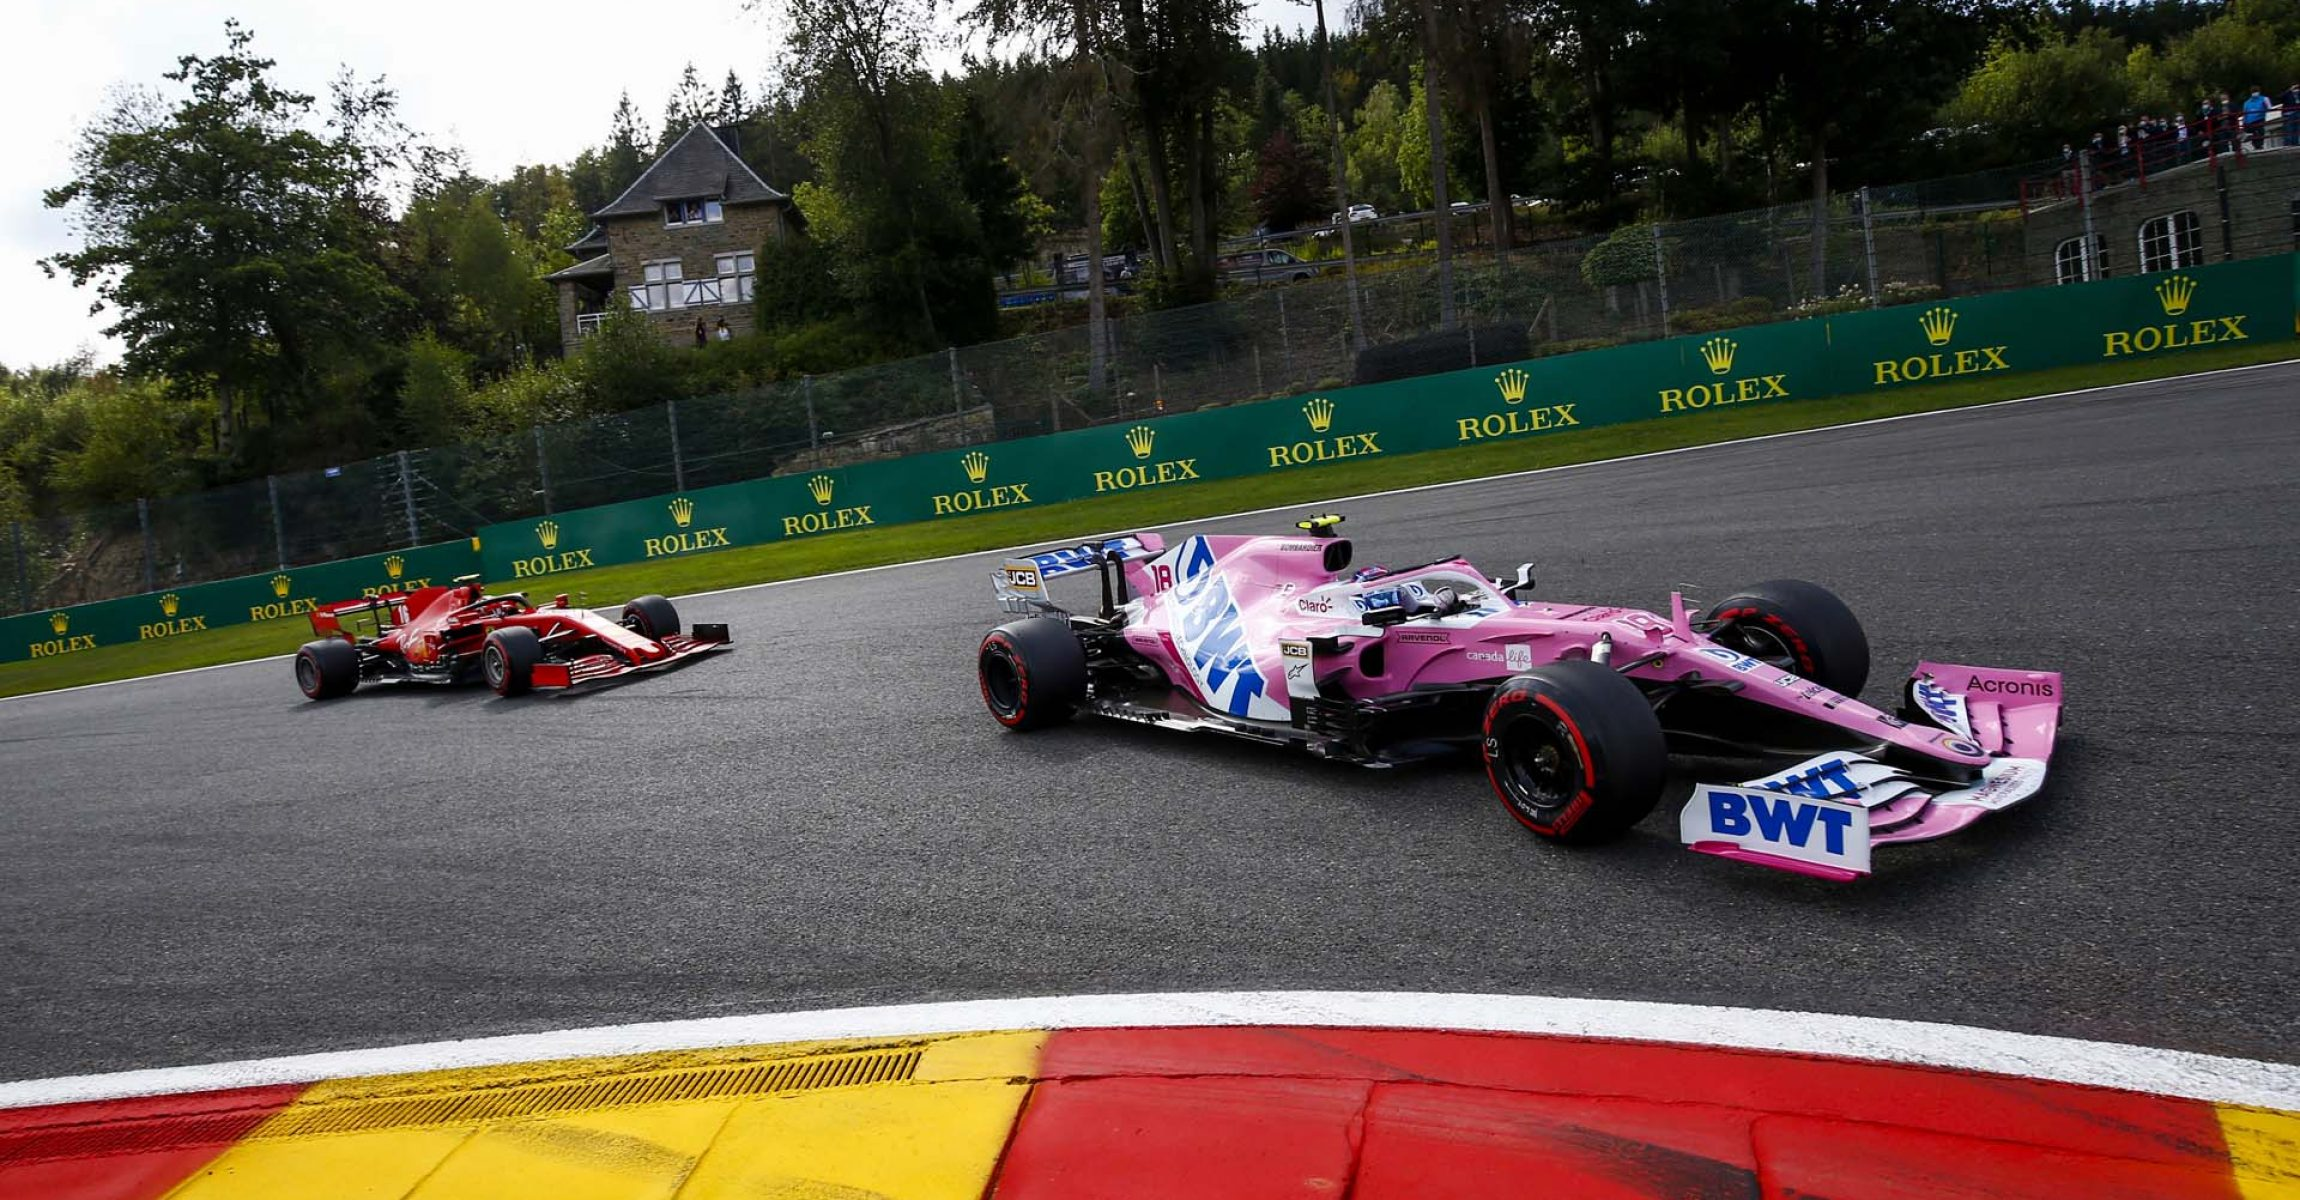 Lance Stroll, Racing Point RP20, leads Charles Leclerc, Ferrari SF1000